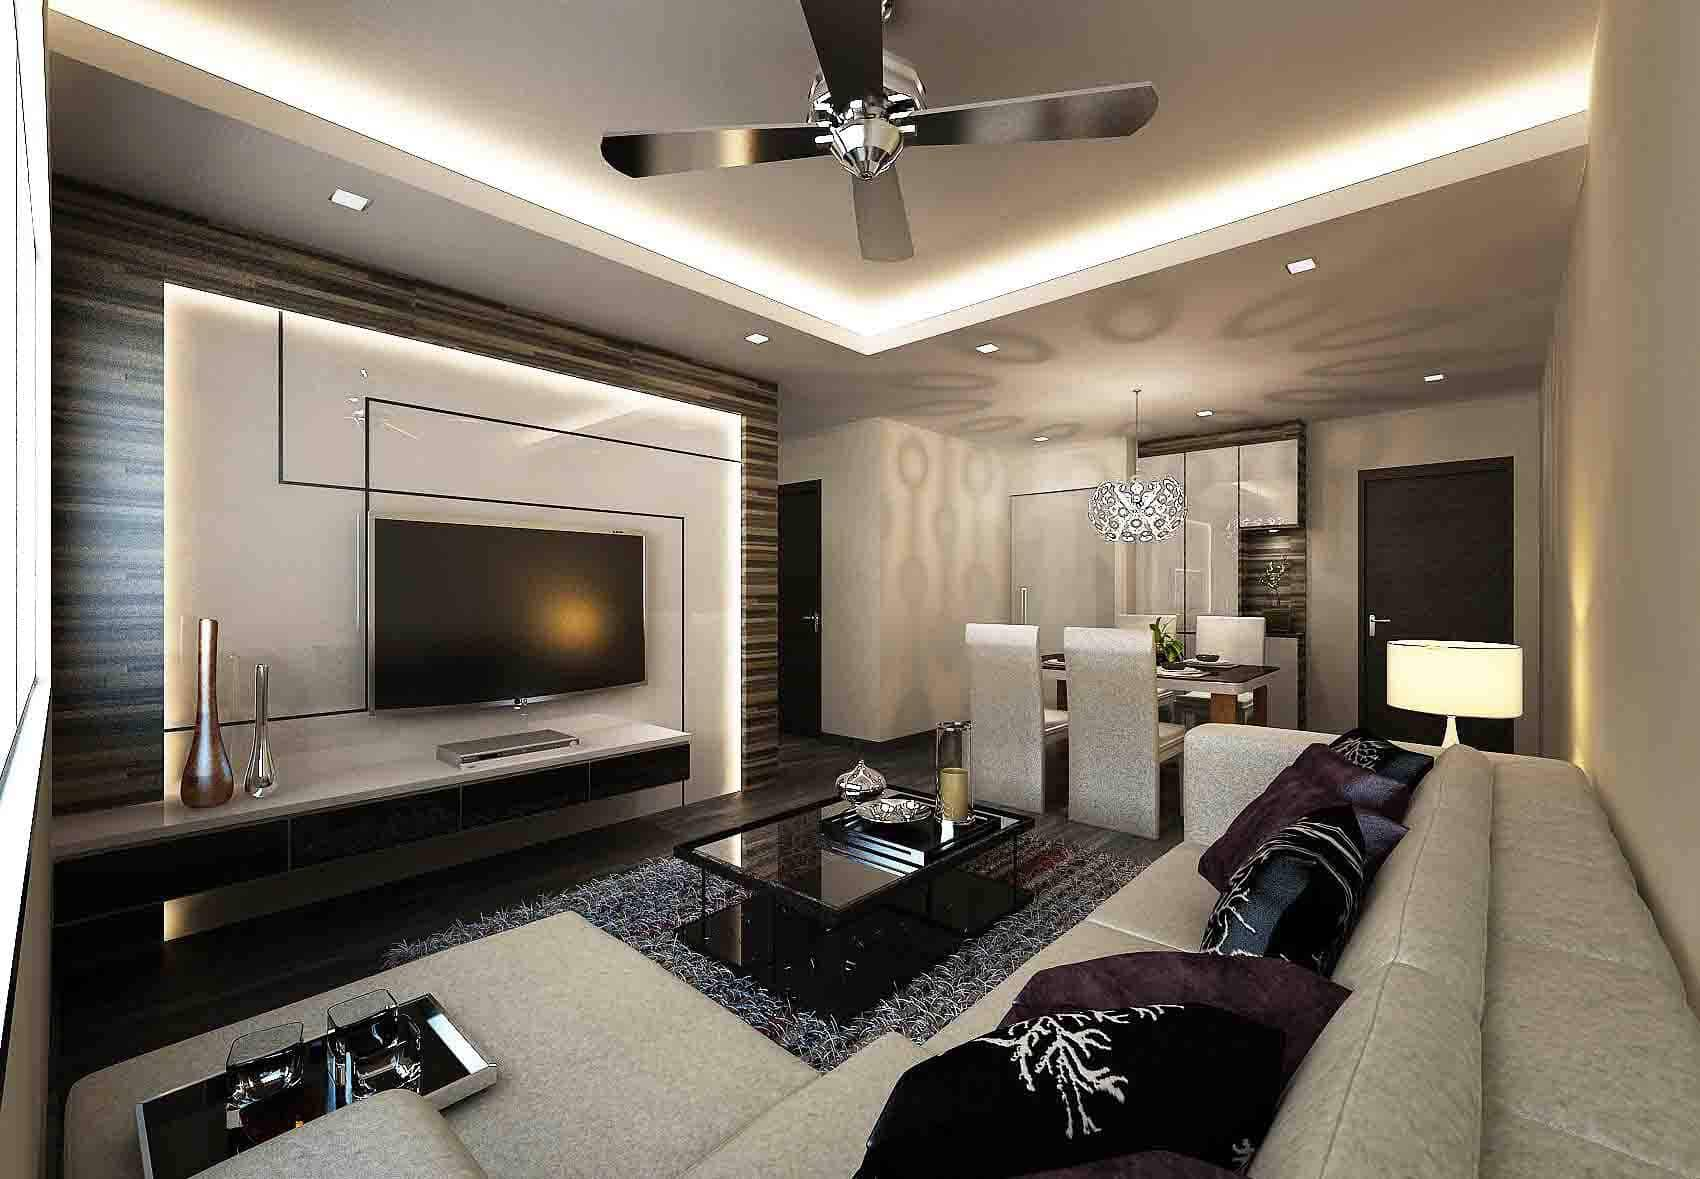 5 elements of a successful living room concept juz interior - How to decorate a small living space concept ...